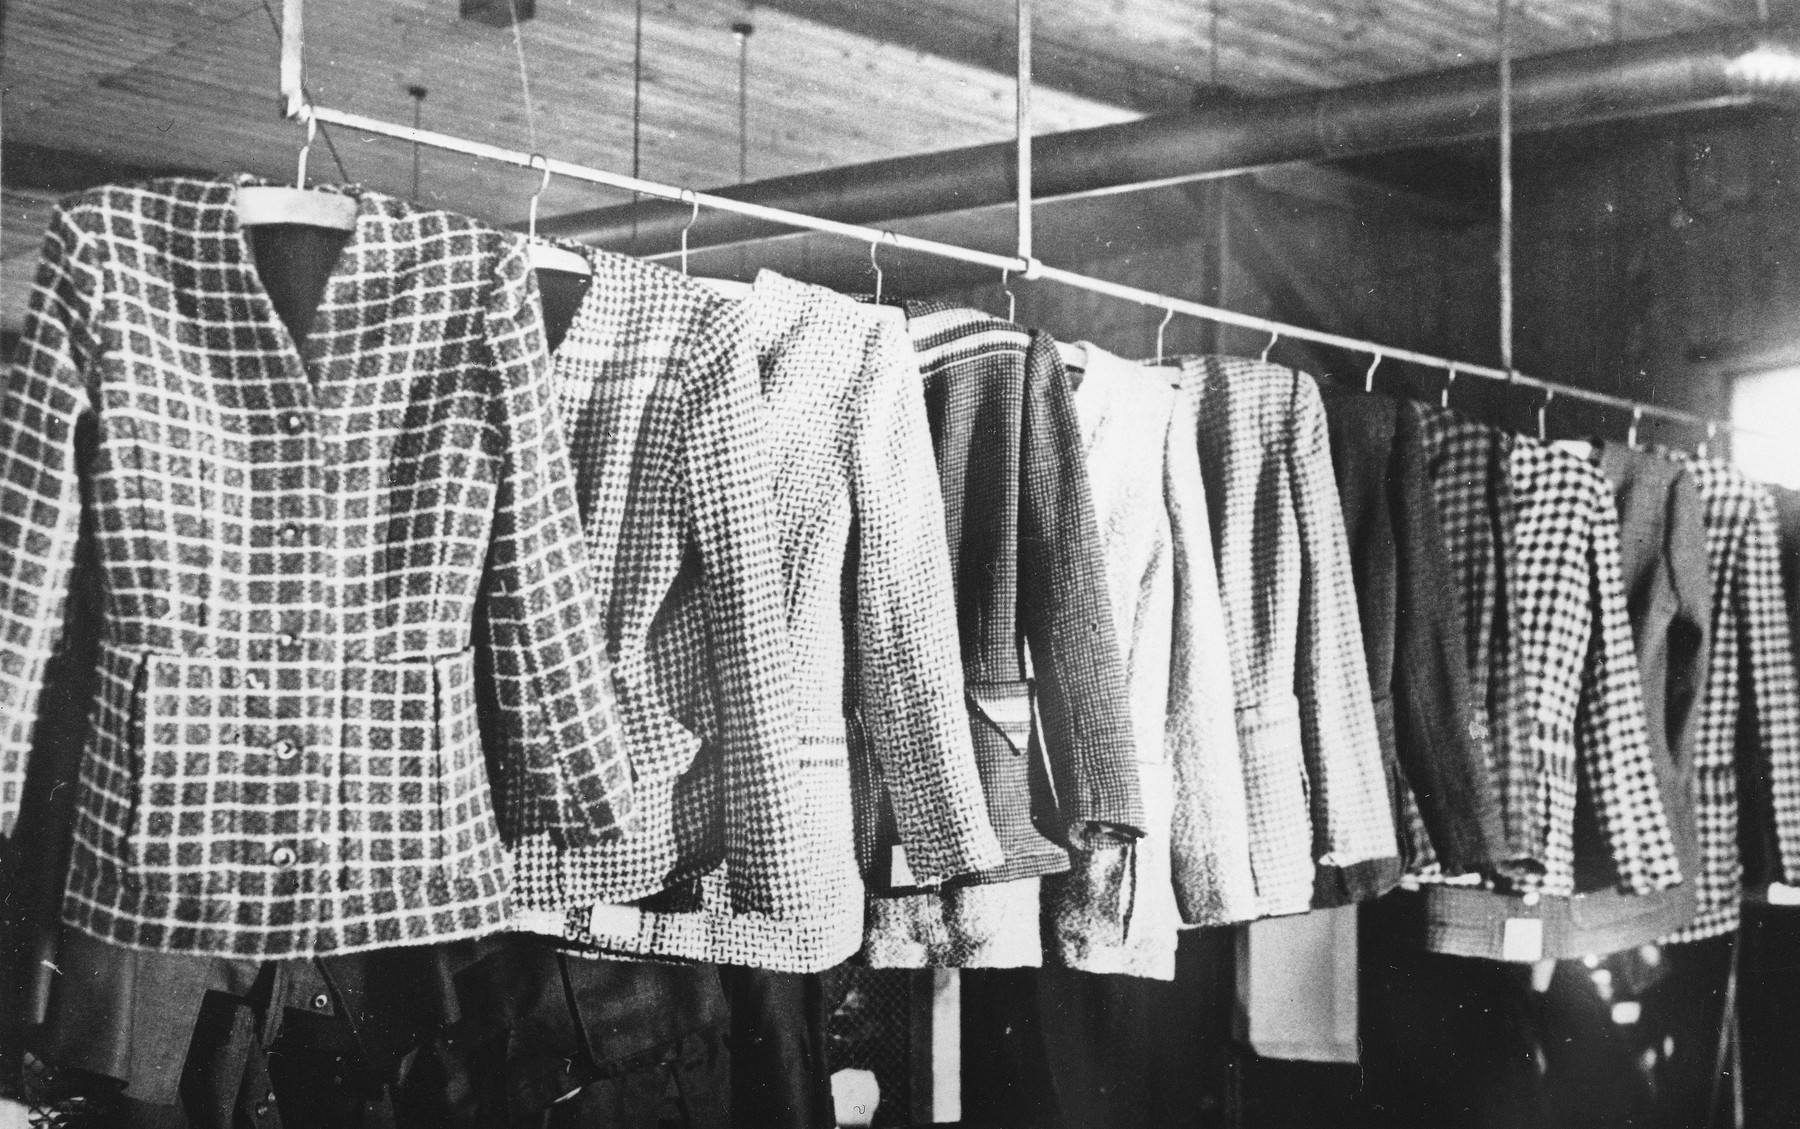 Women's suits made by prisoners at a Slovak labor camp.